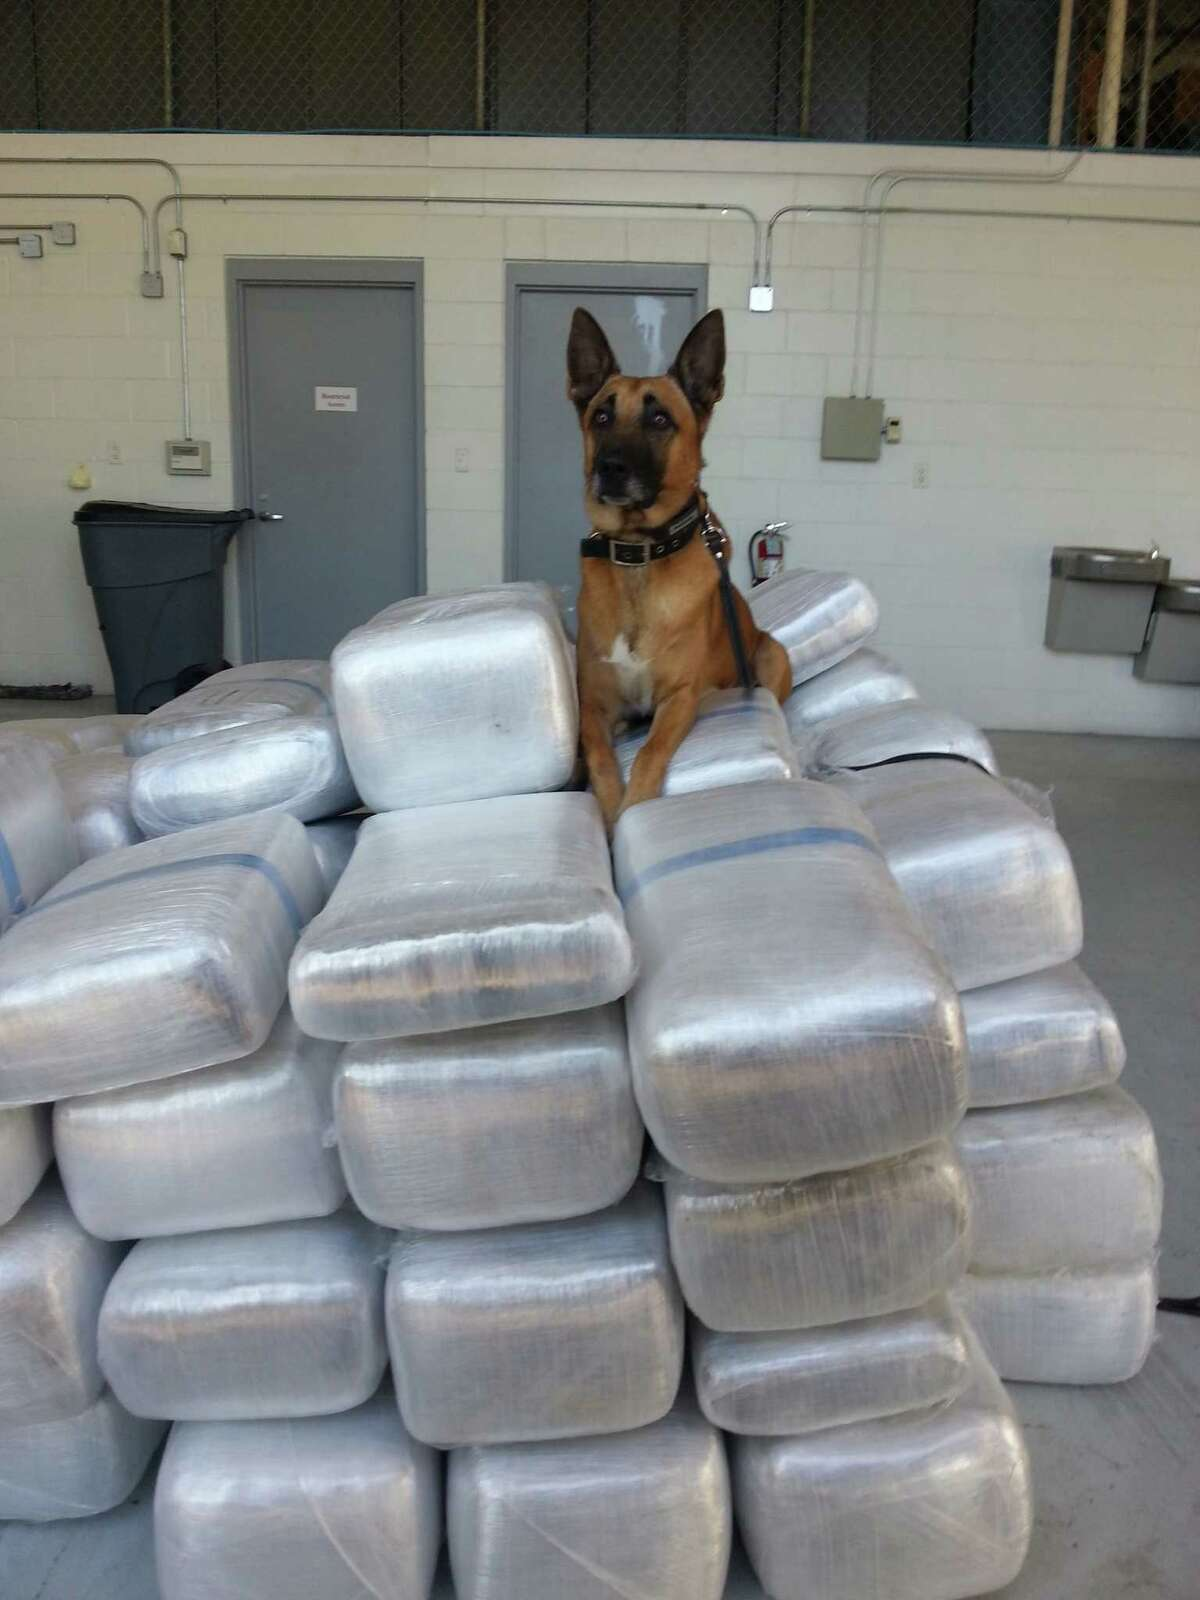 Nov. 20, 2013: A 29-year-old Houston man was arrested after more than a ton of marijuana was found in his pickup during a traffic stop on U.S. 59 in Sugar Land.